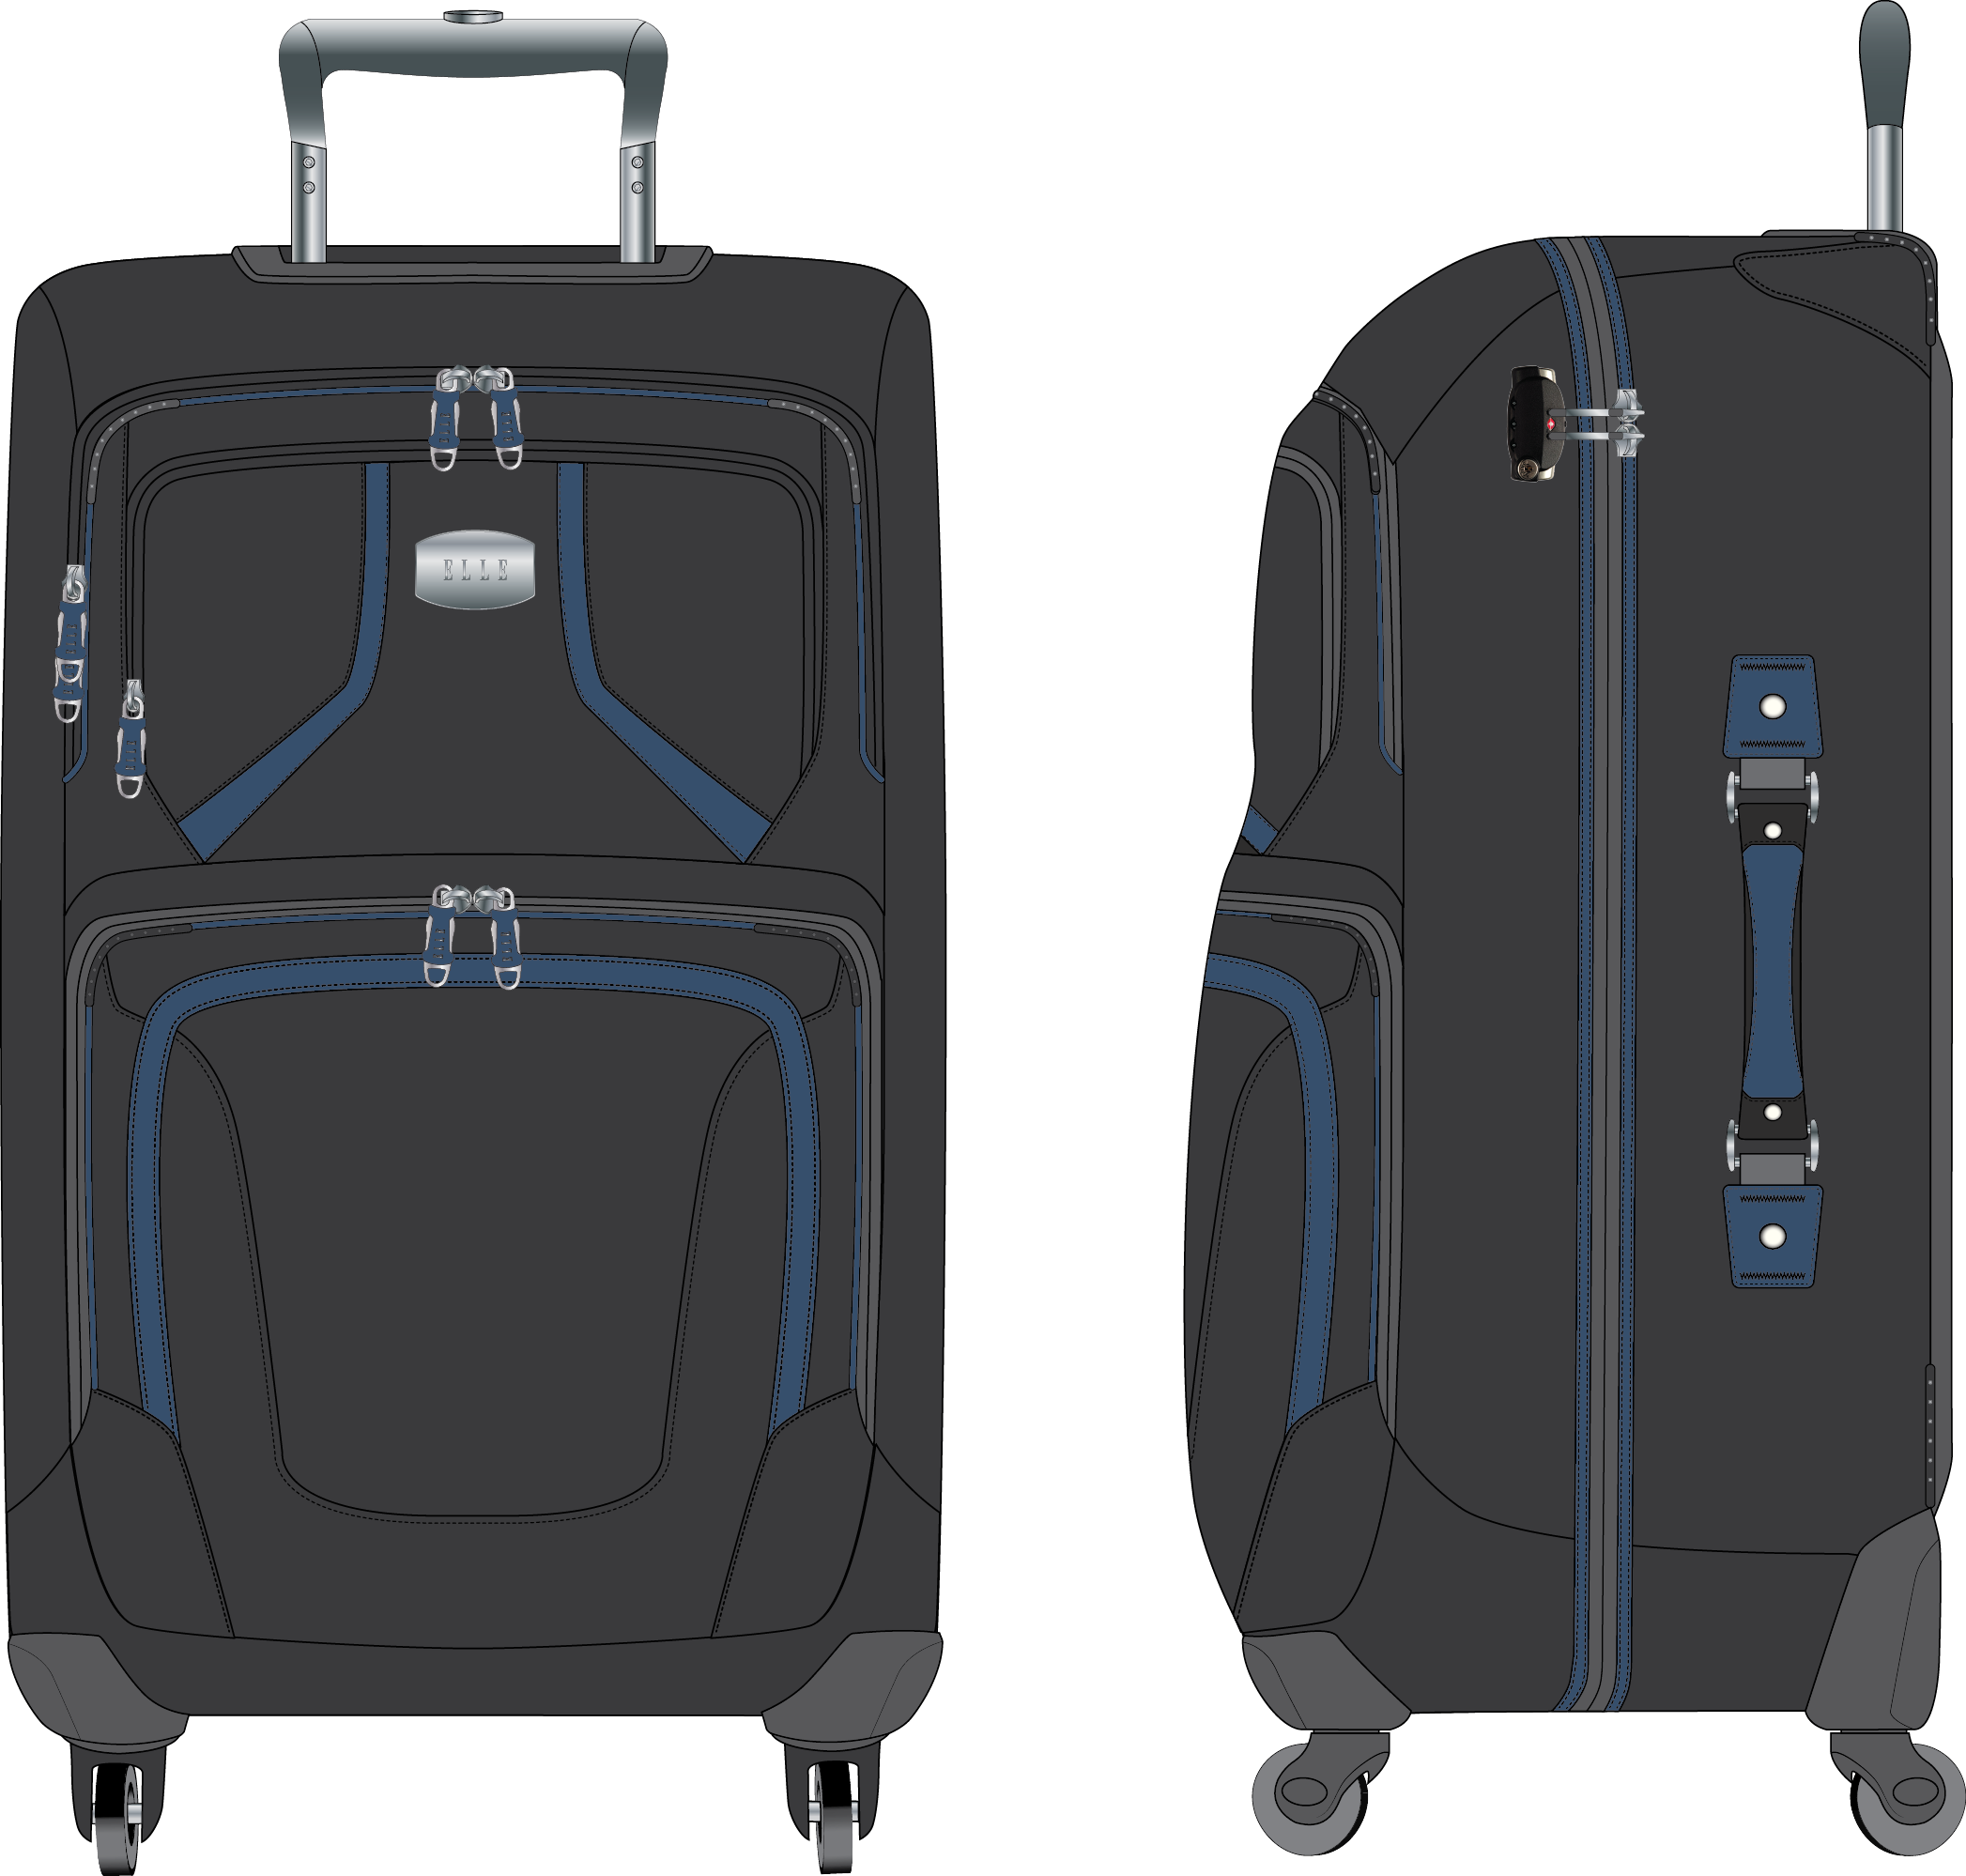 339fdb5b742a ELLE Branded Wheeled Luggage - Designed for the Hong Kong Licensee for ELLE  bags in China.